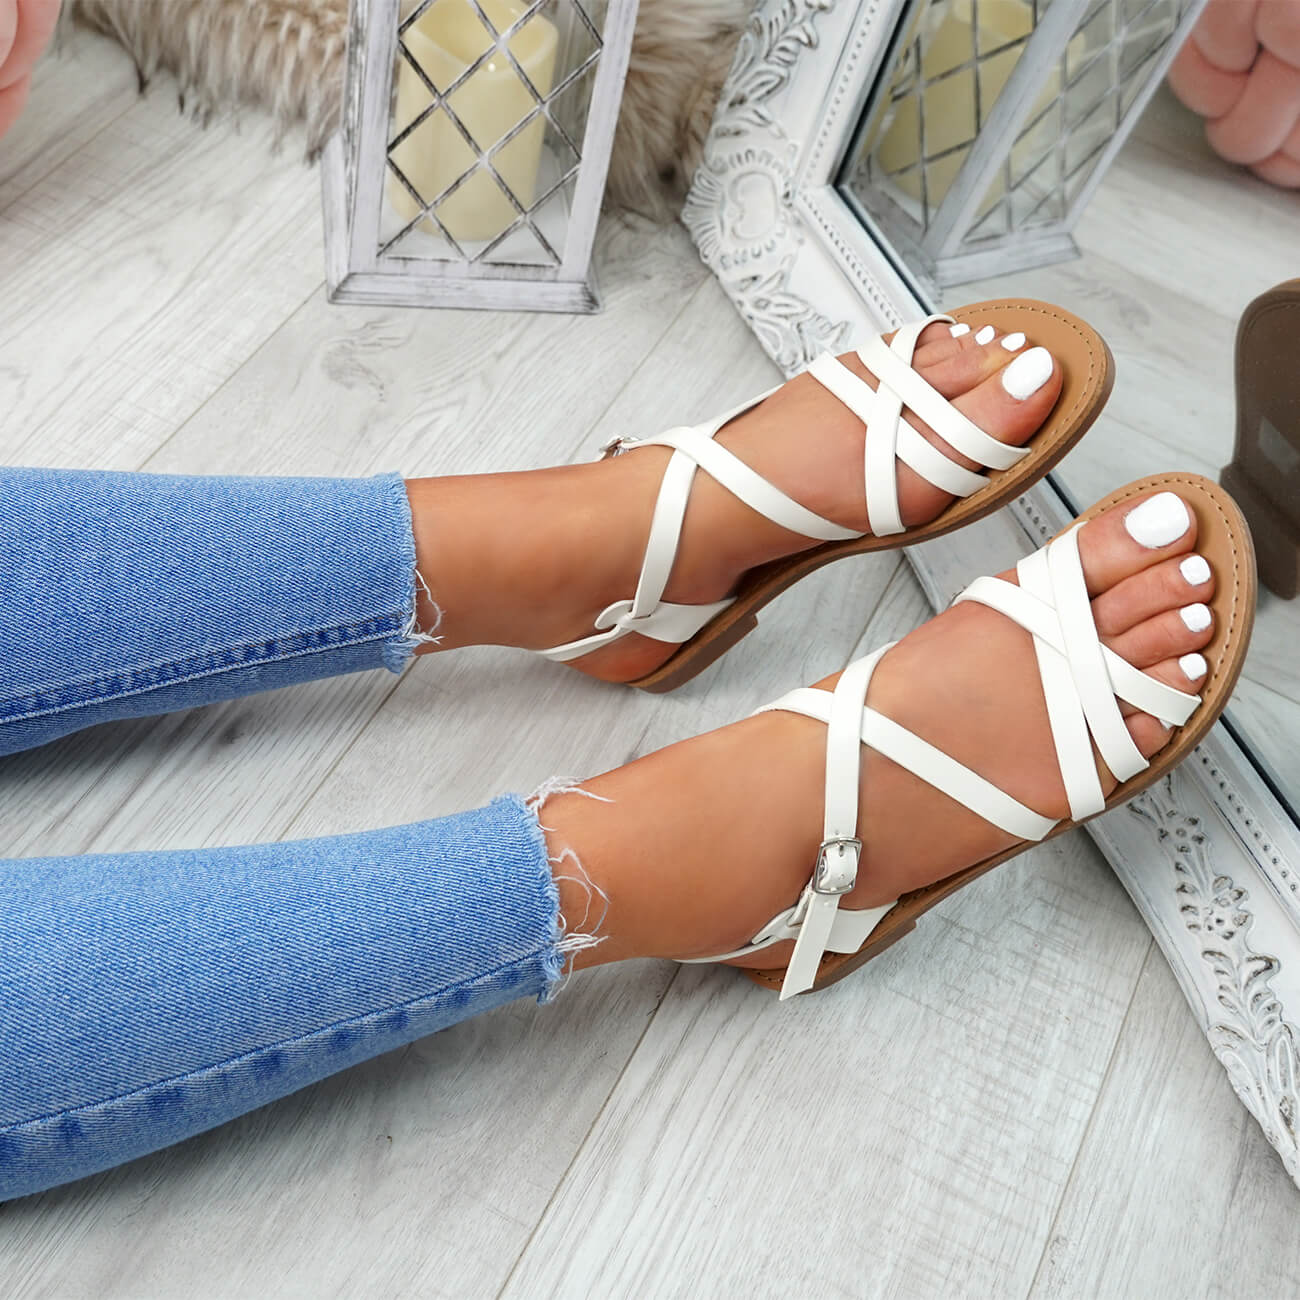 WOMENS-LADIES-ANKLE-STRAP-PEEP-TOE-BUCKLE-FLAT-SANDALS-SUMMER-CASUAL-SHOES thumbnail 34